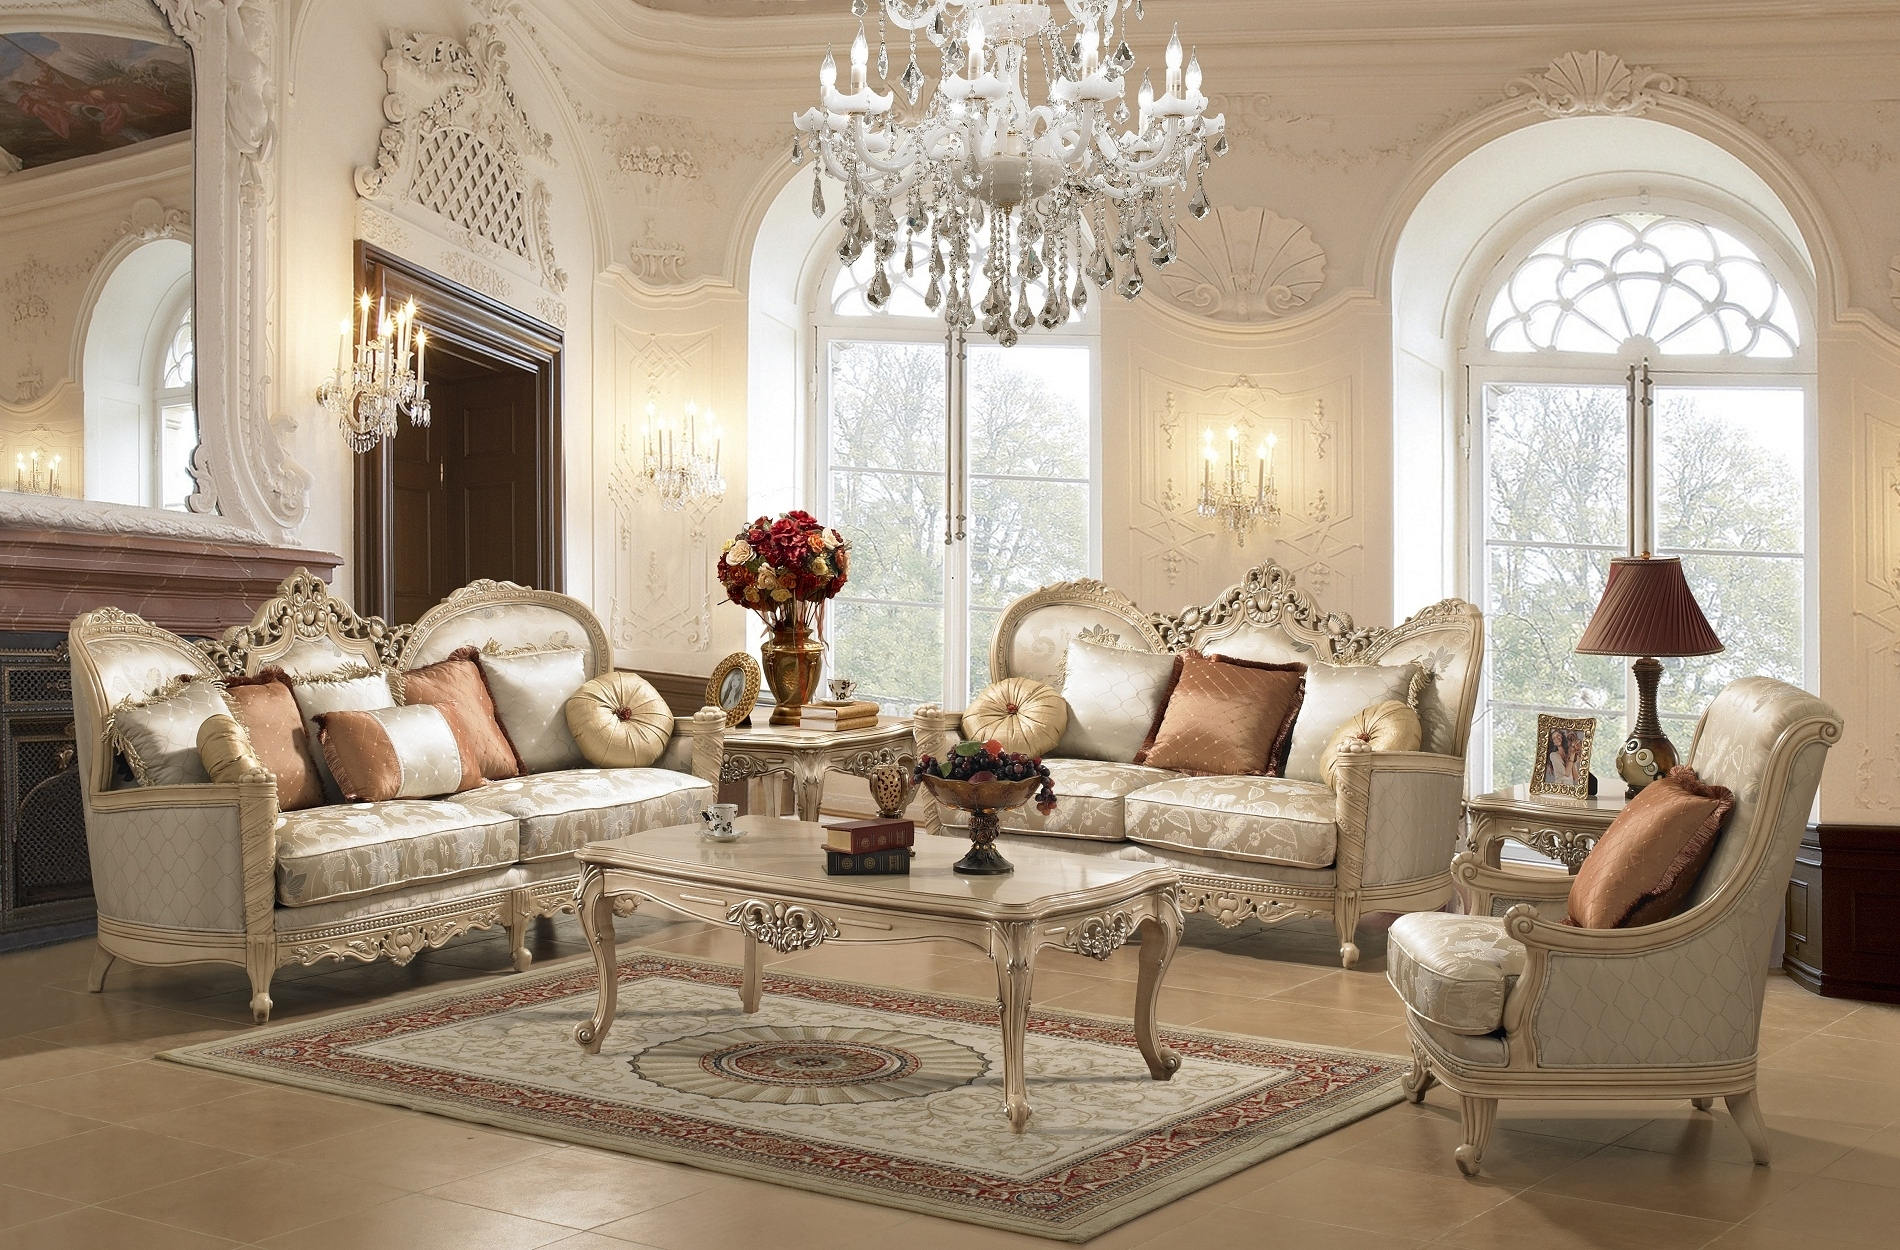 Uncategorized : Elegant Sofas Within Awesome 15 Best Collection Of Within Current Elegant Sofas And Chairs (View 12 of 20)